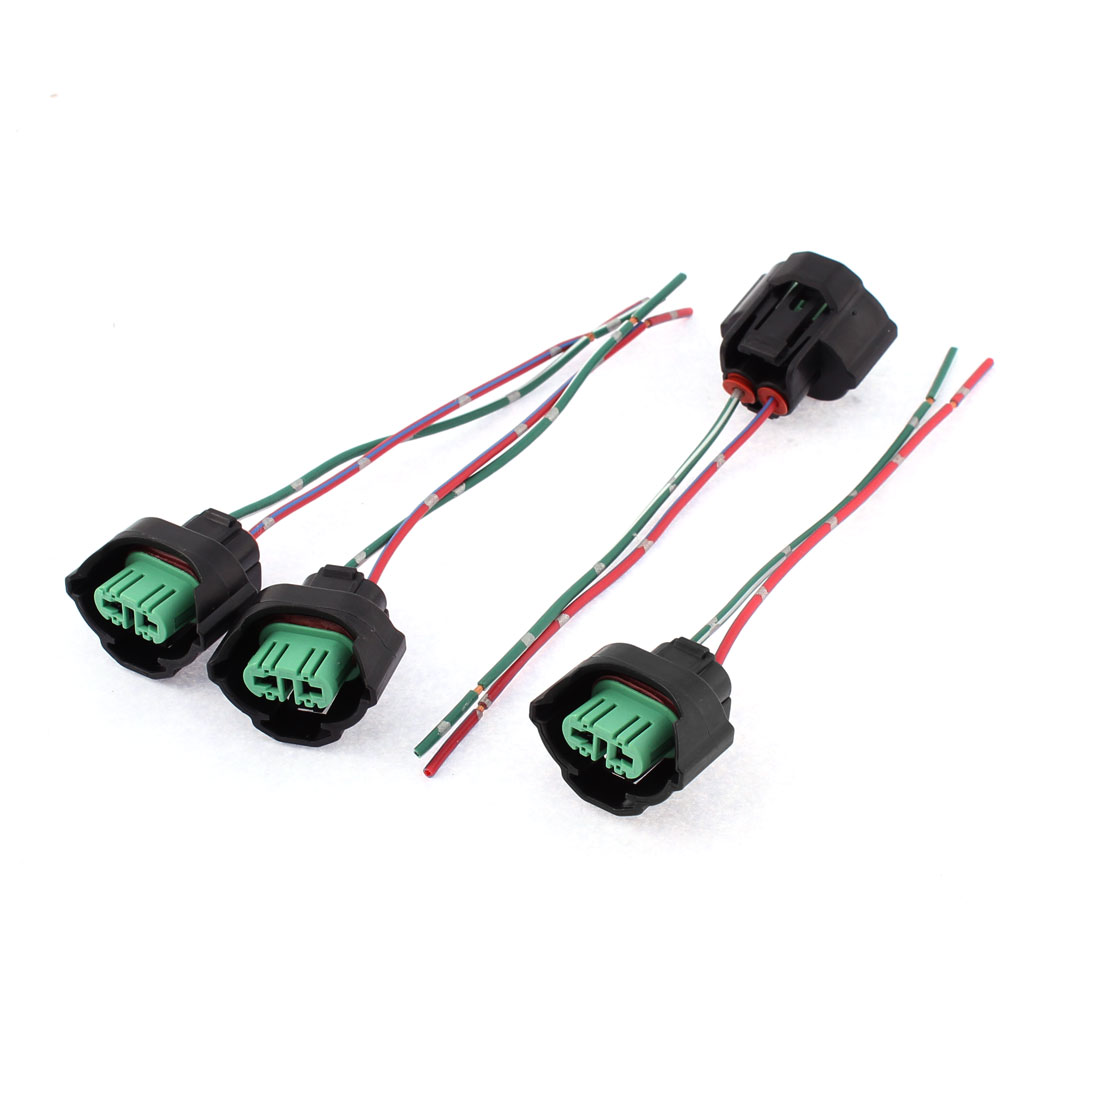 4 Pcs Wire Harness Headlight H9 Sockets Lamp Light Holder Green Black